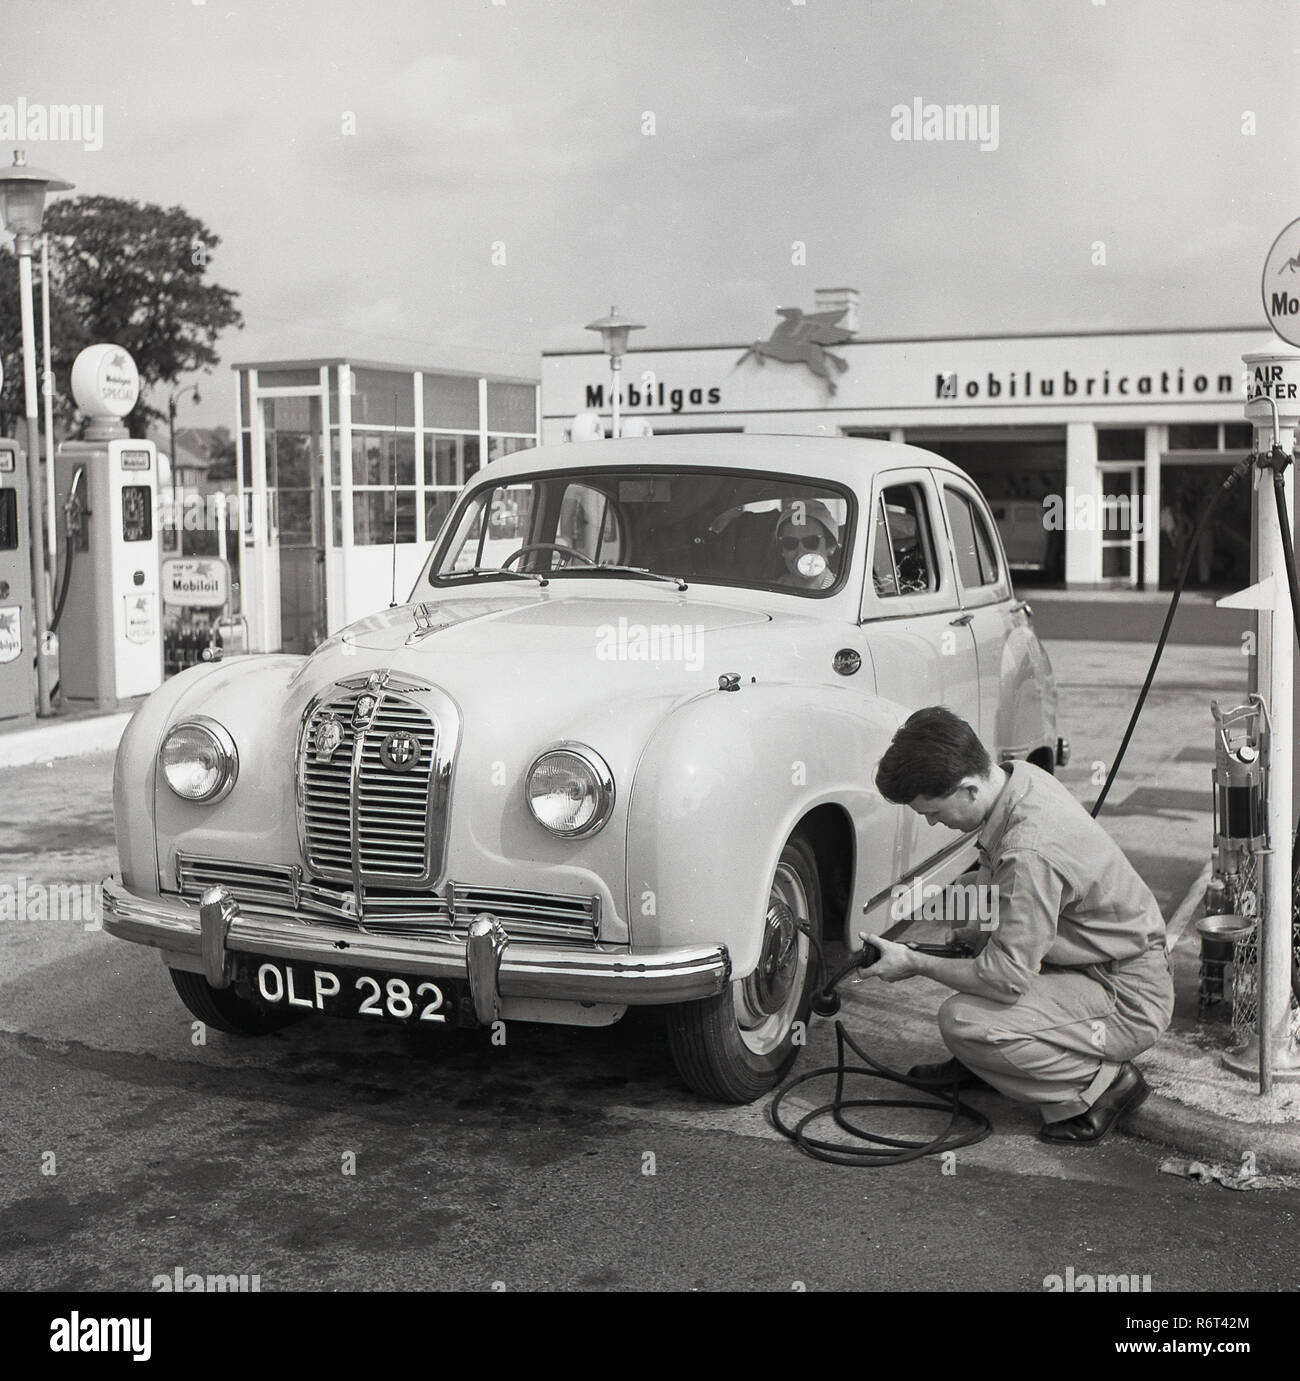 1950s, historical, the golden days of motoring, a young male service station sttendant checks the tyre pressure on an Austin car parked at a the fuel pumps at a Mobilgas Service Station, London, England, UK. - Stock Image